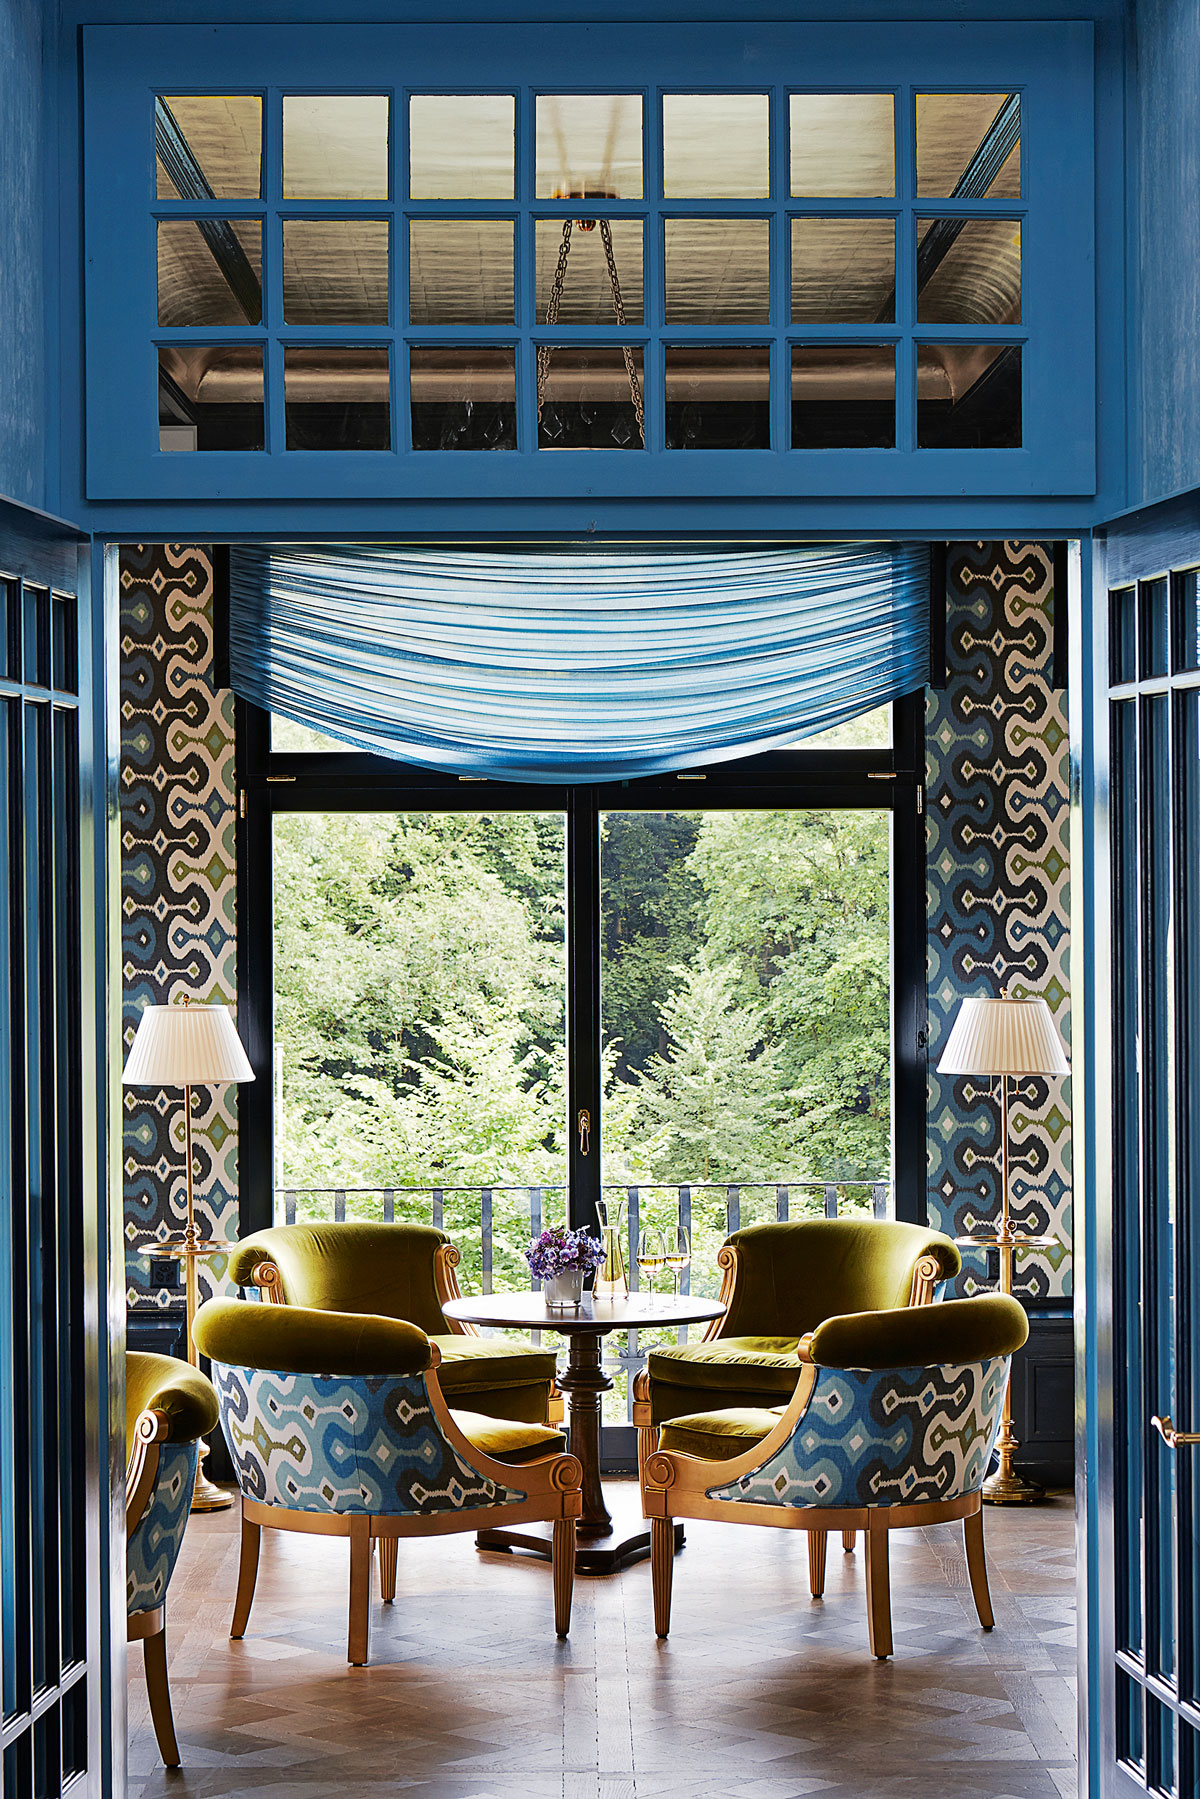 The Gütsch Bar In Switzerland With Martyn S Adras Ikat Print Replicated On Both Walls And Upholstery